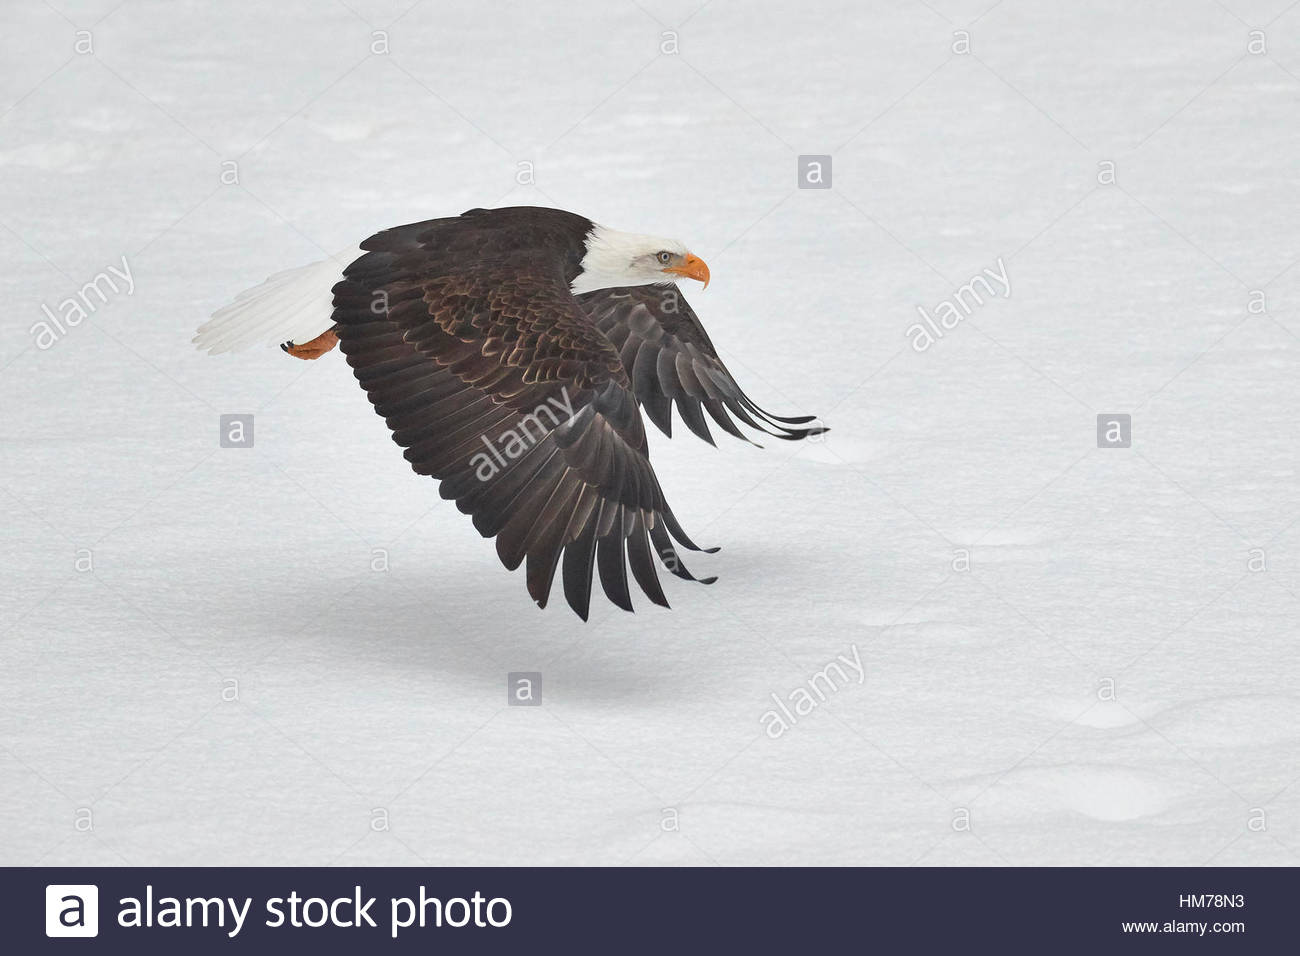 A bald eagle (Haliaeetus leucocephalus) flies low over a snow-covered gravel bar in the Nooksack River in Welcome, - Stock Image